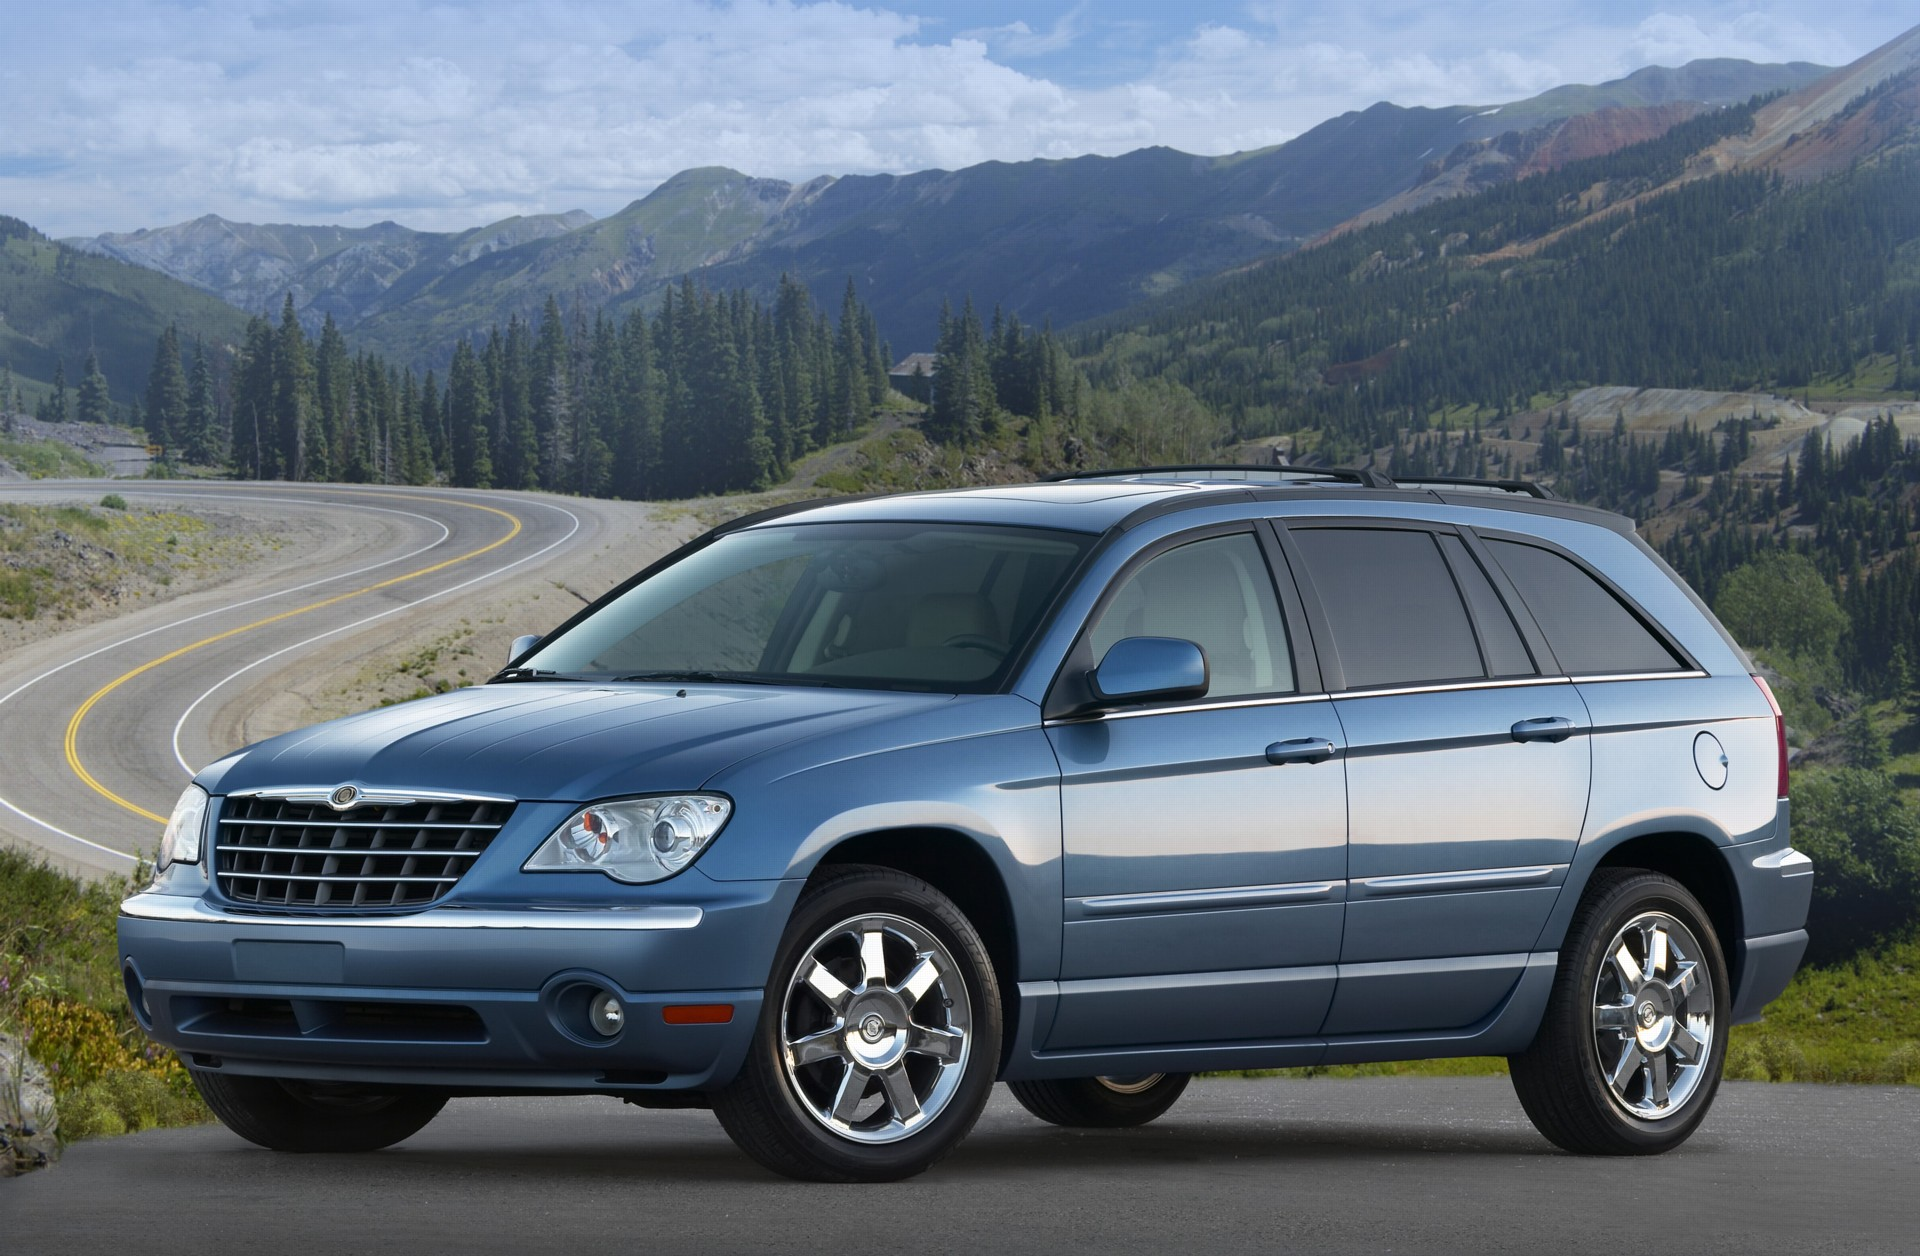 2007 Chrysler Pacifica History, Pictures, Value, Auction Sales, Research and News